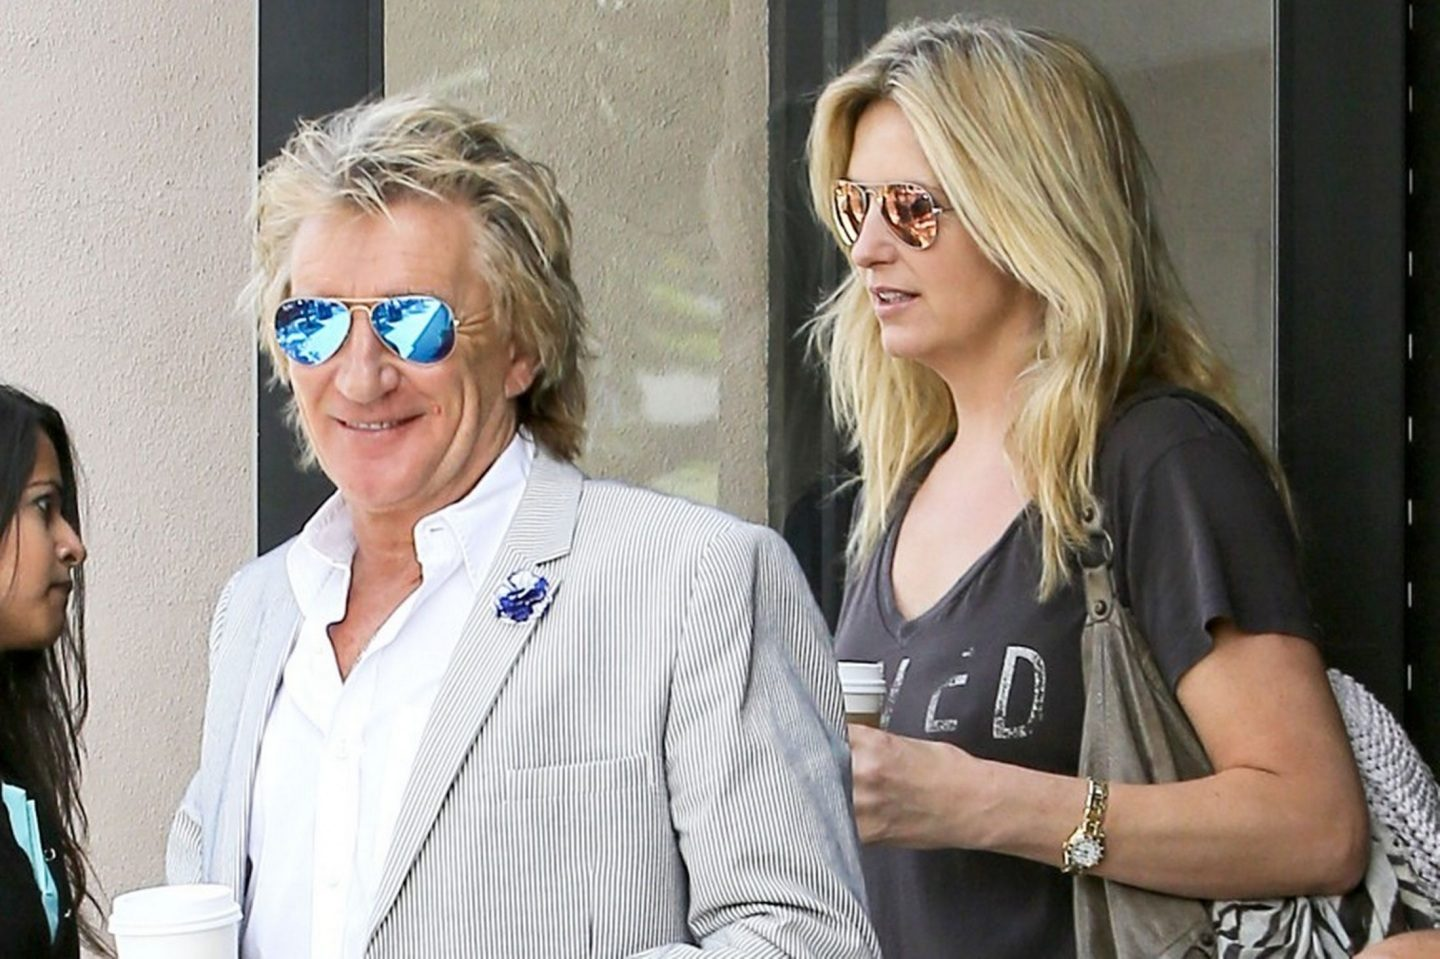 rod-stewart-and-his-wife-penny-lancaster-grab-some-starbucks-in-beverly-hills-for-their-morning-caffeine-kick-1685896578